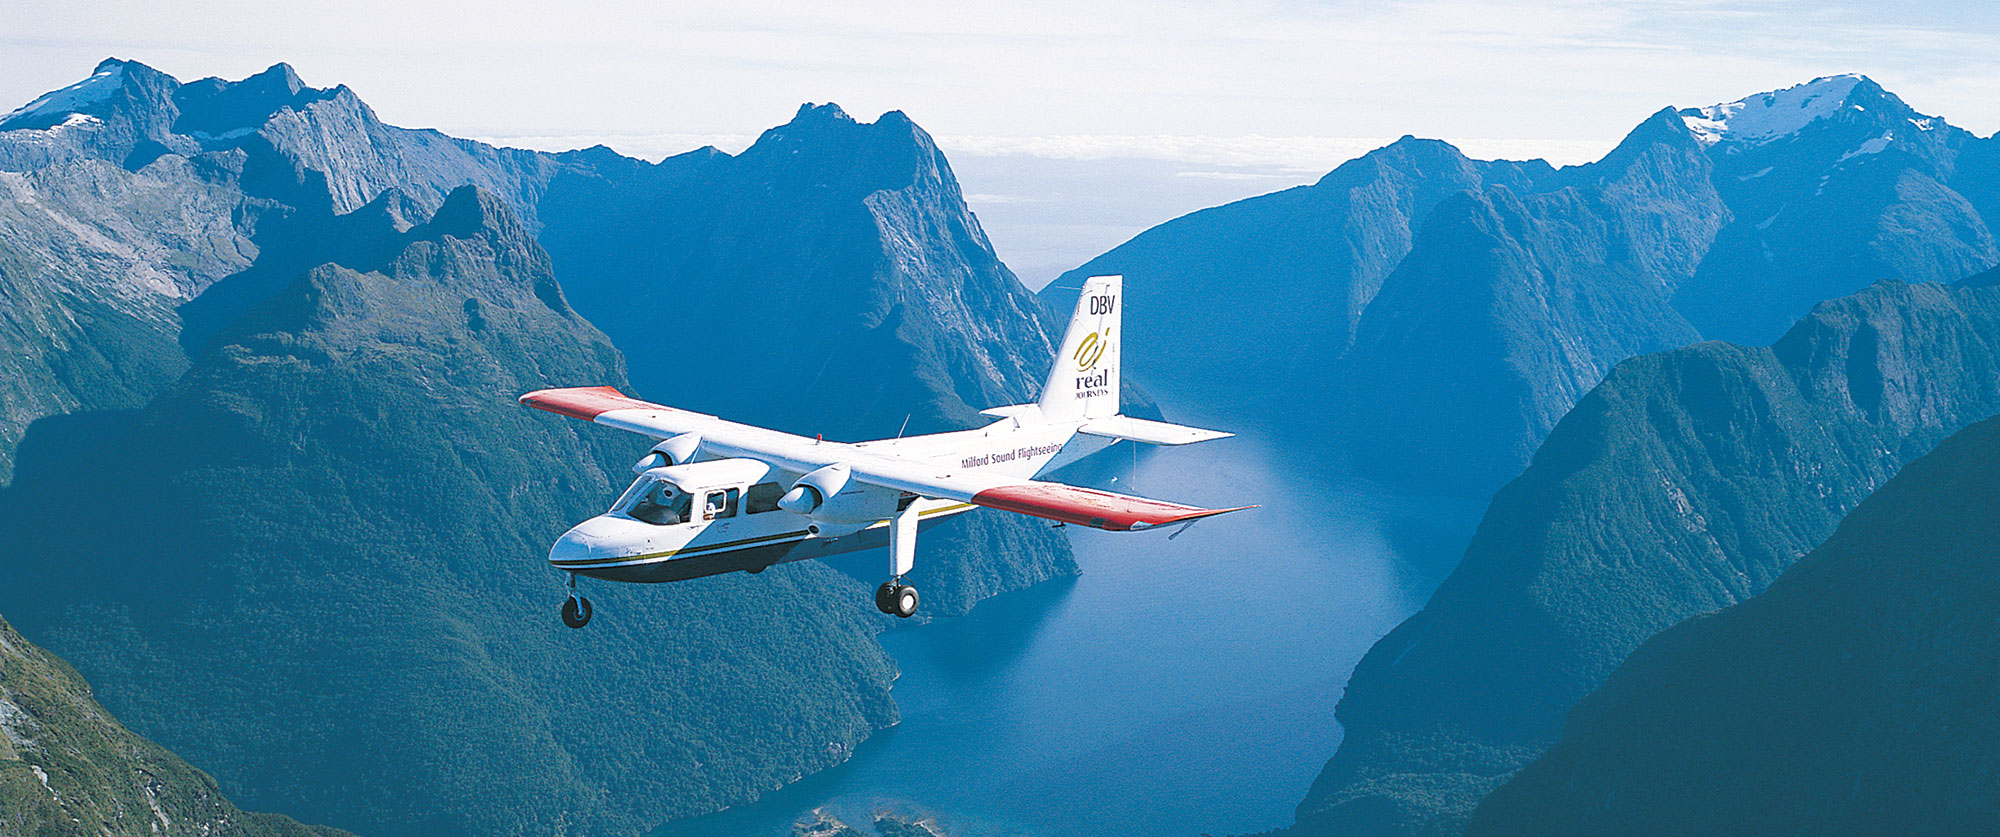 New Zealand Multigeneration Vacation - Milford Sound Scenic Flight